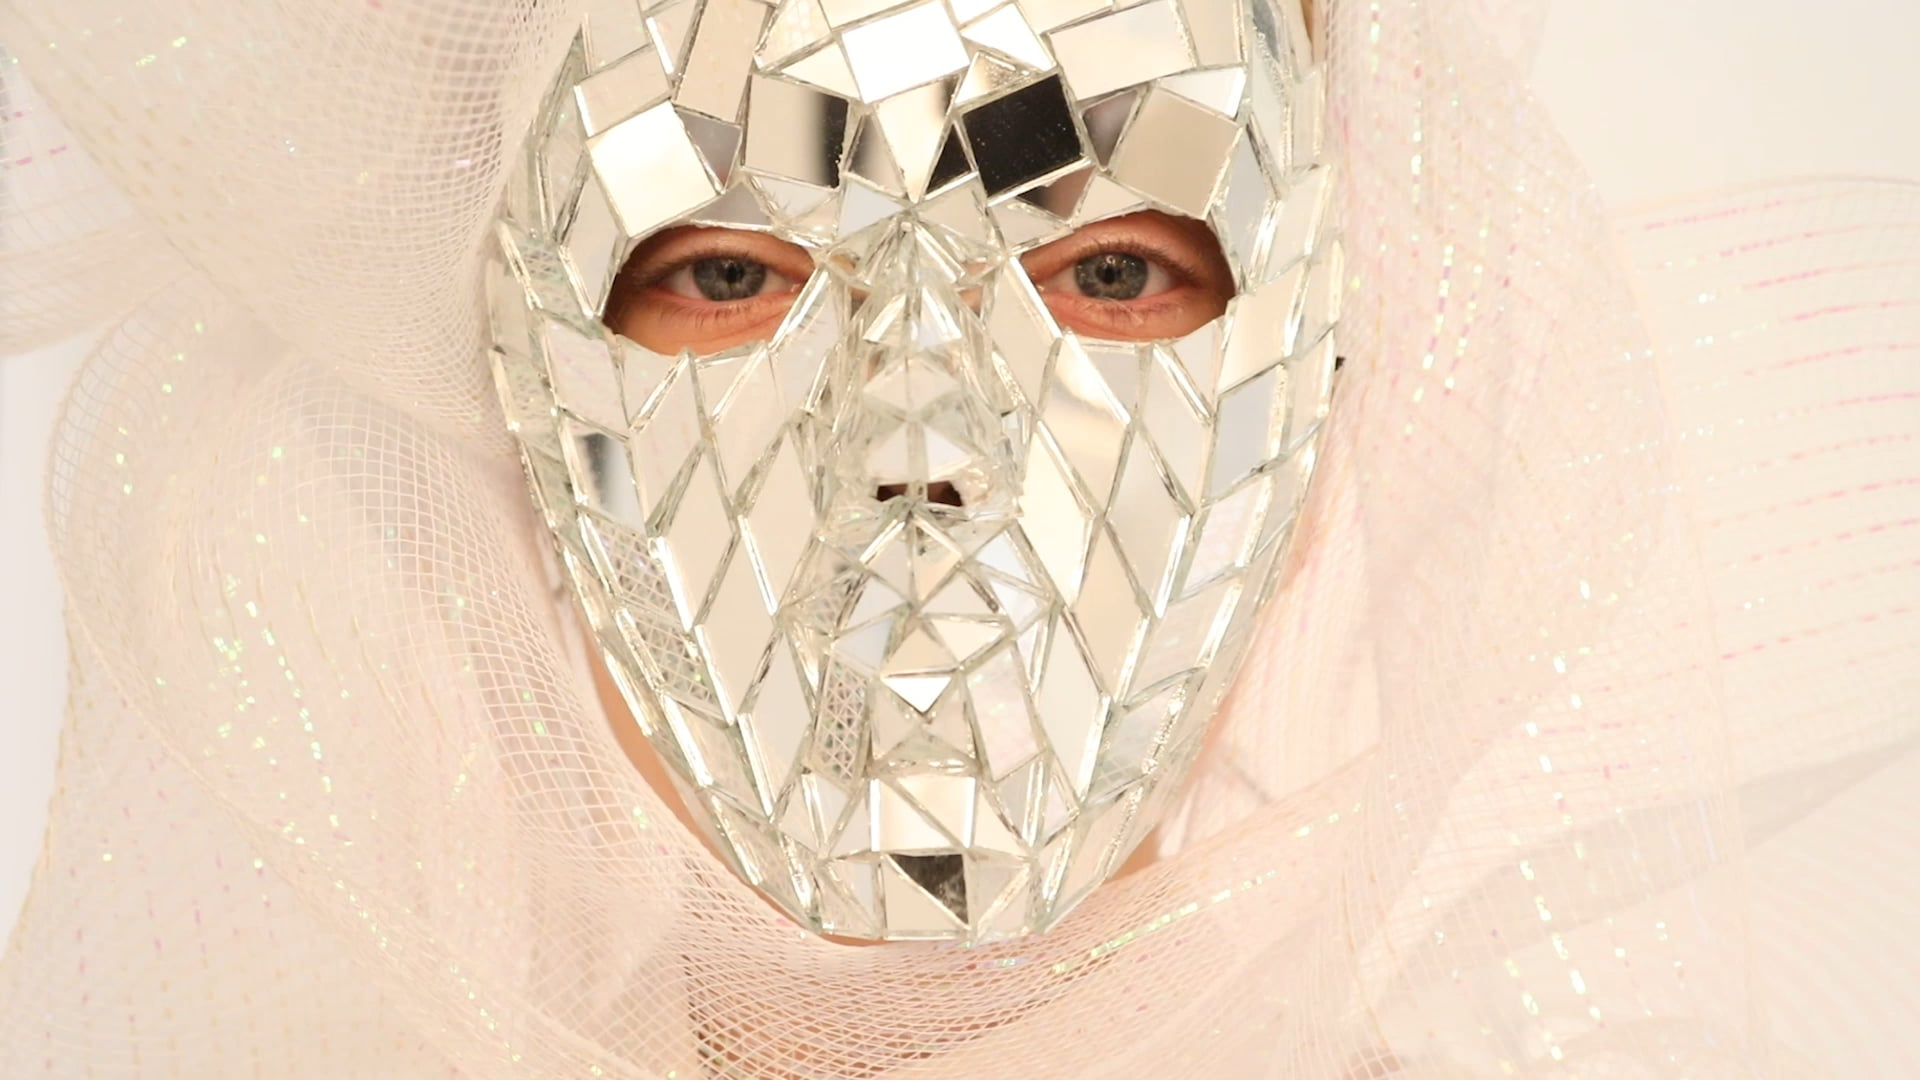 jamie-nelson-mirrored-mask-lullaby-film